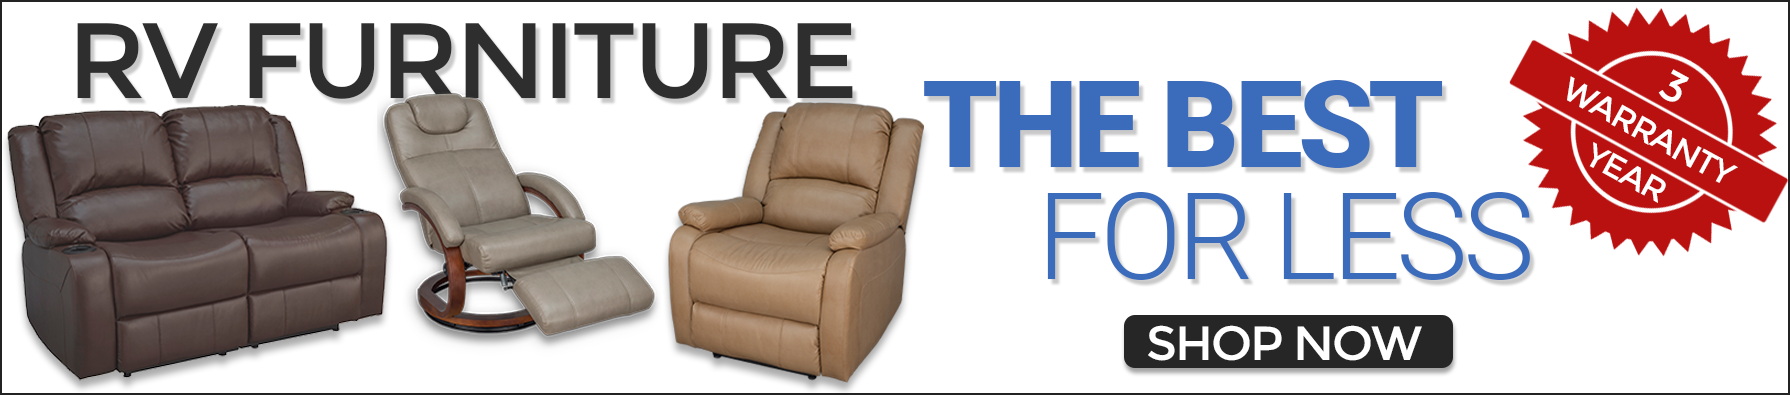 new-furniture-banner.png